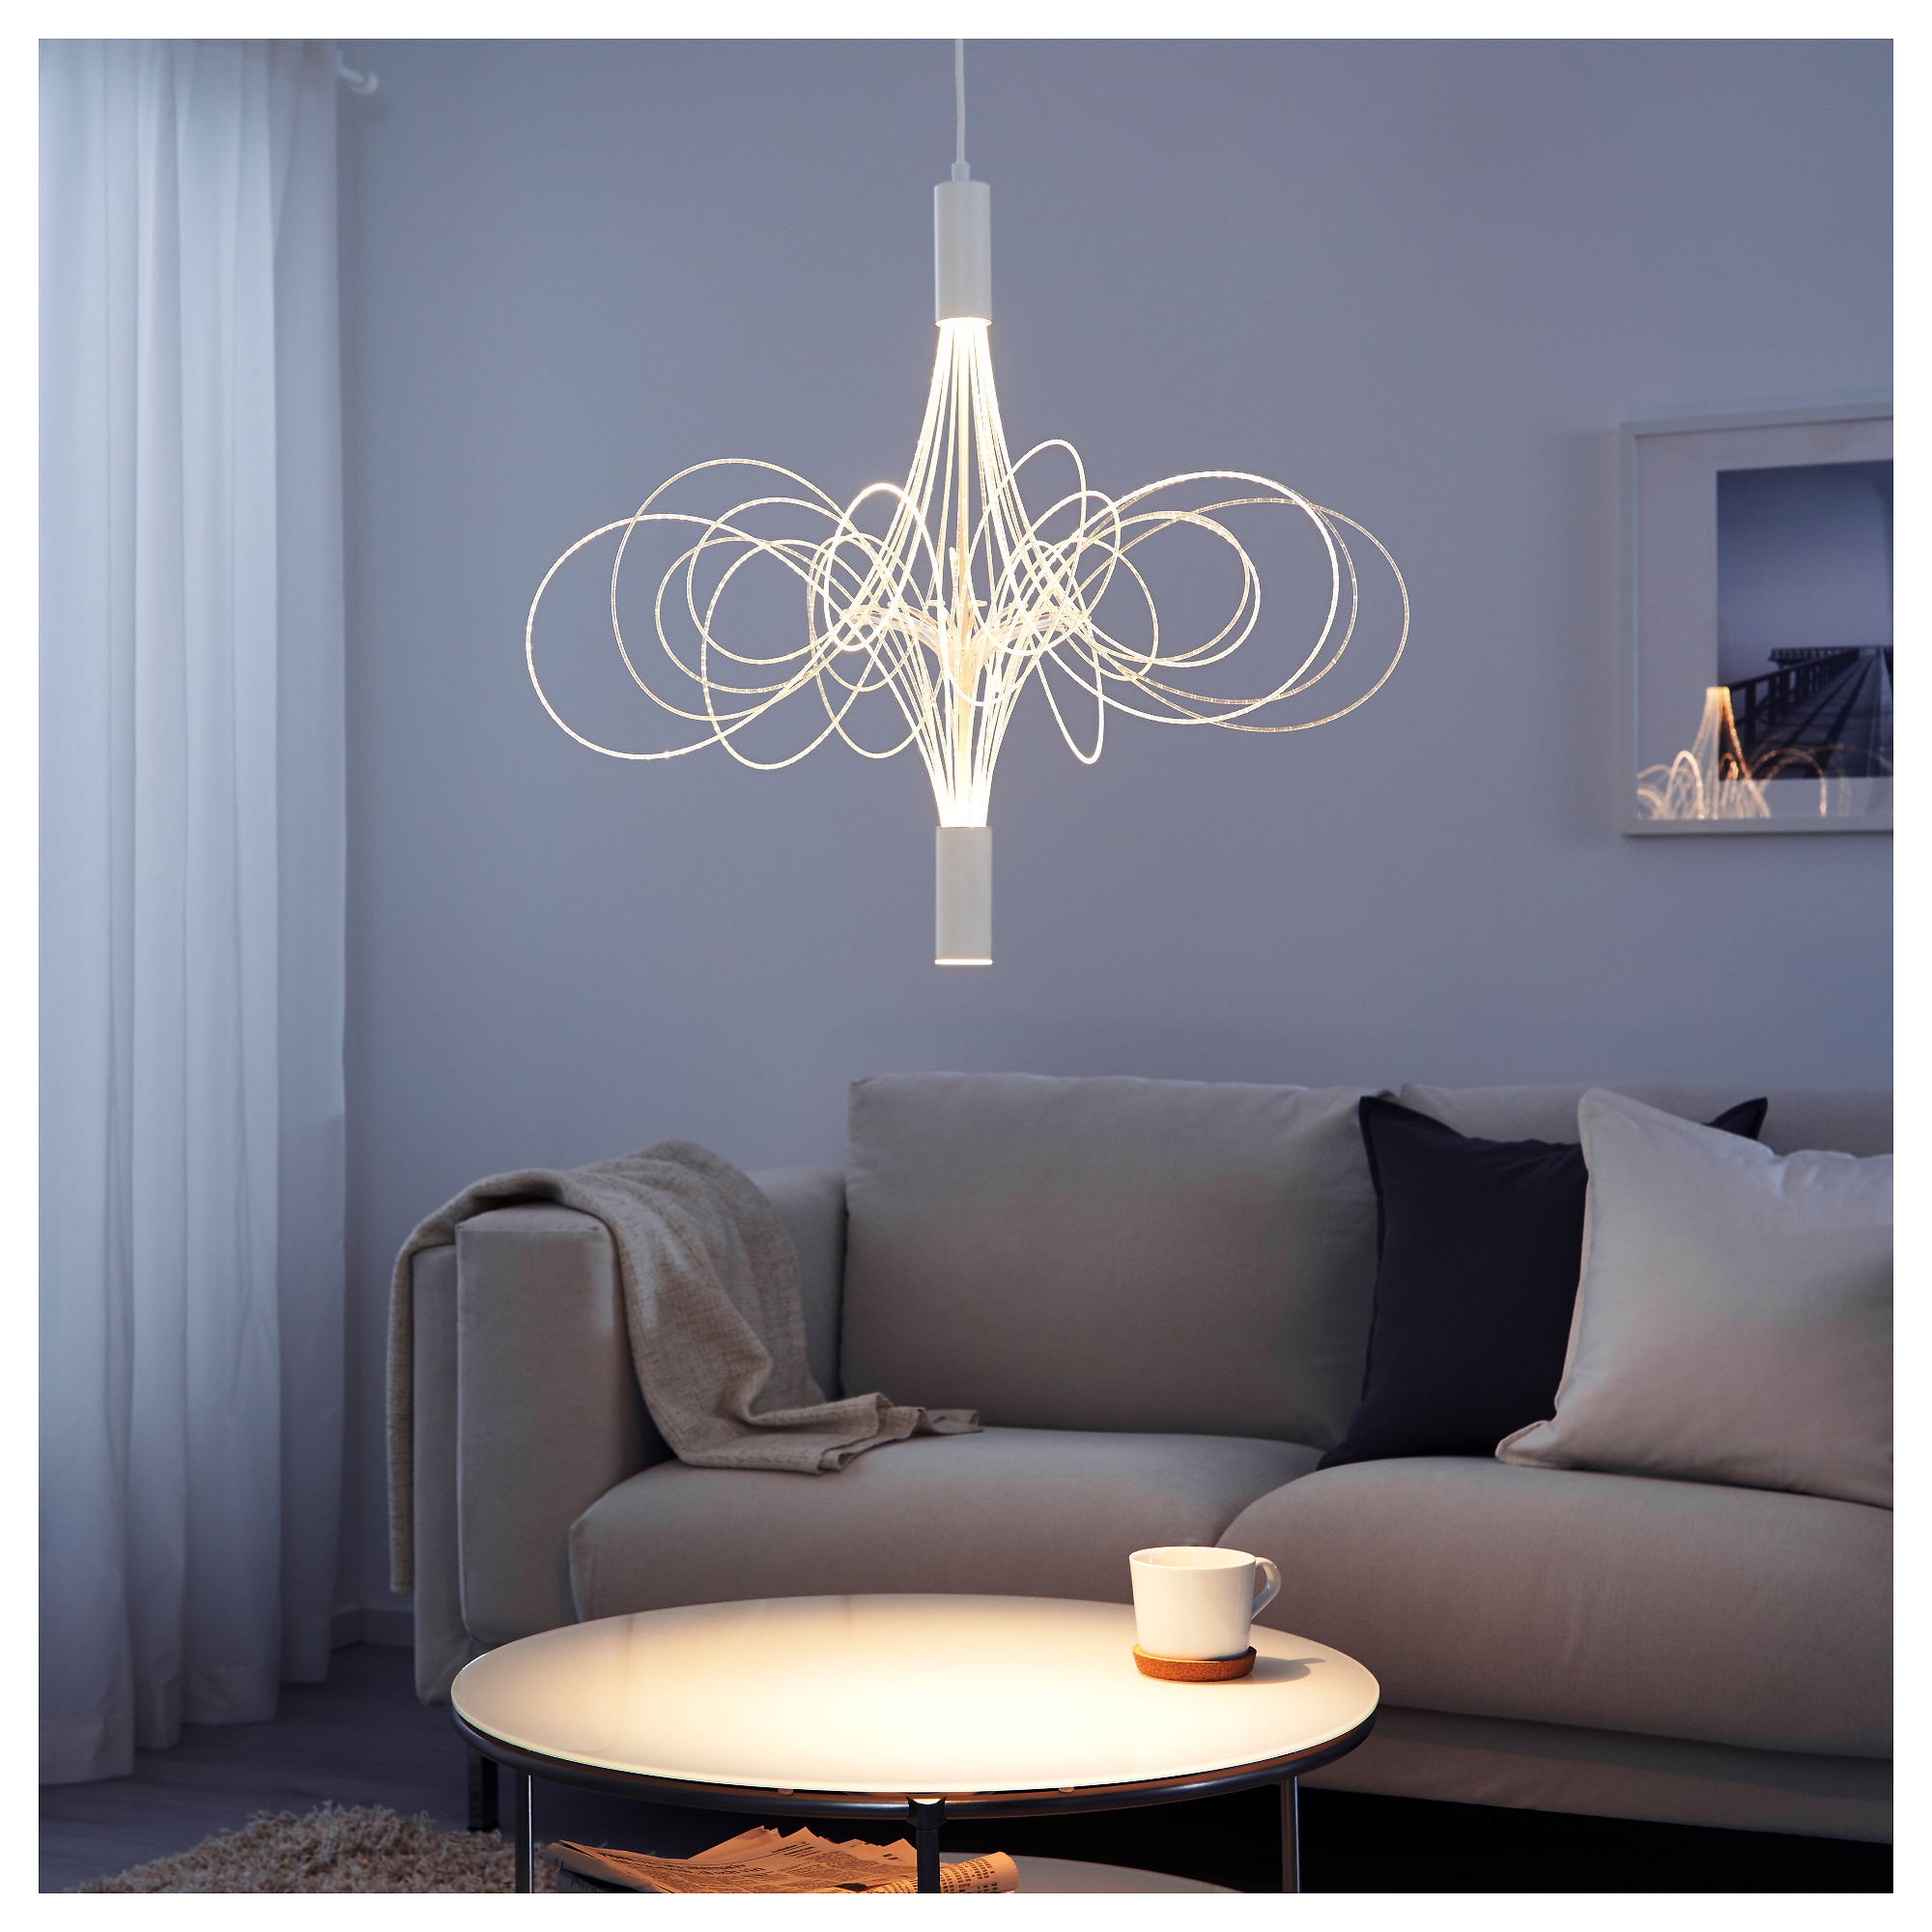 Lustre suspension ikea crikealamp with lustre suspension - Luminaire salle a manger ikea ...